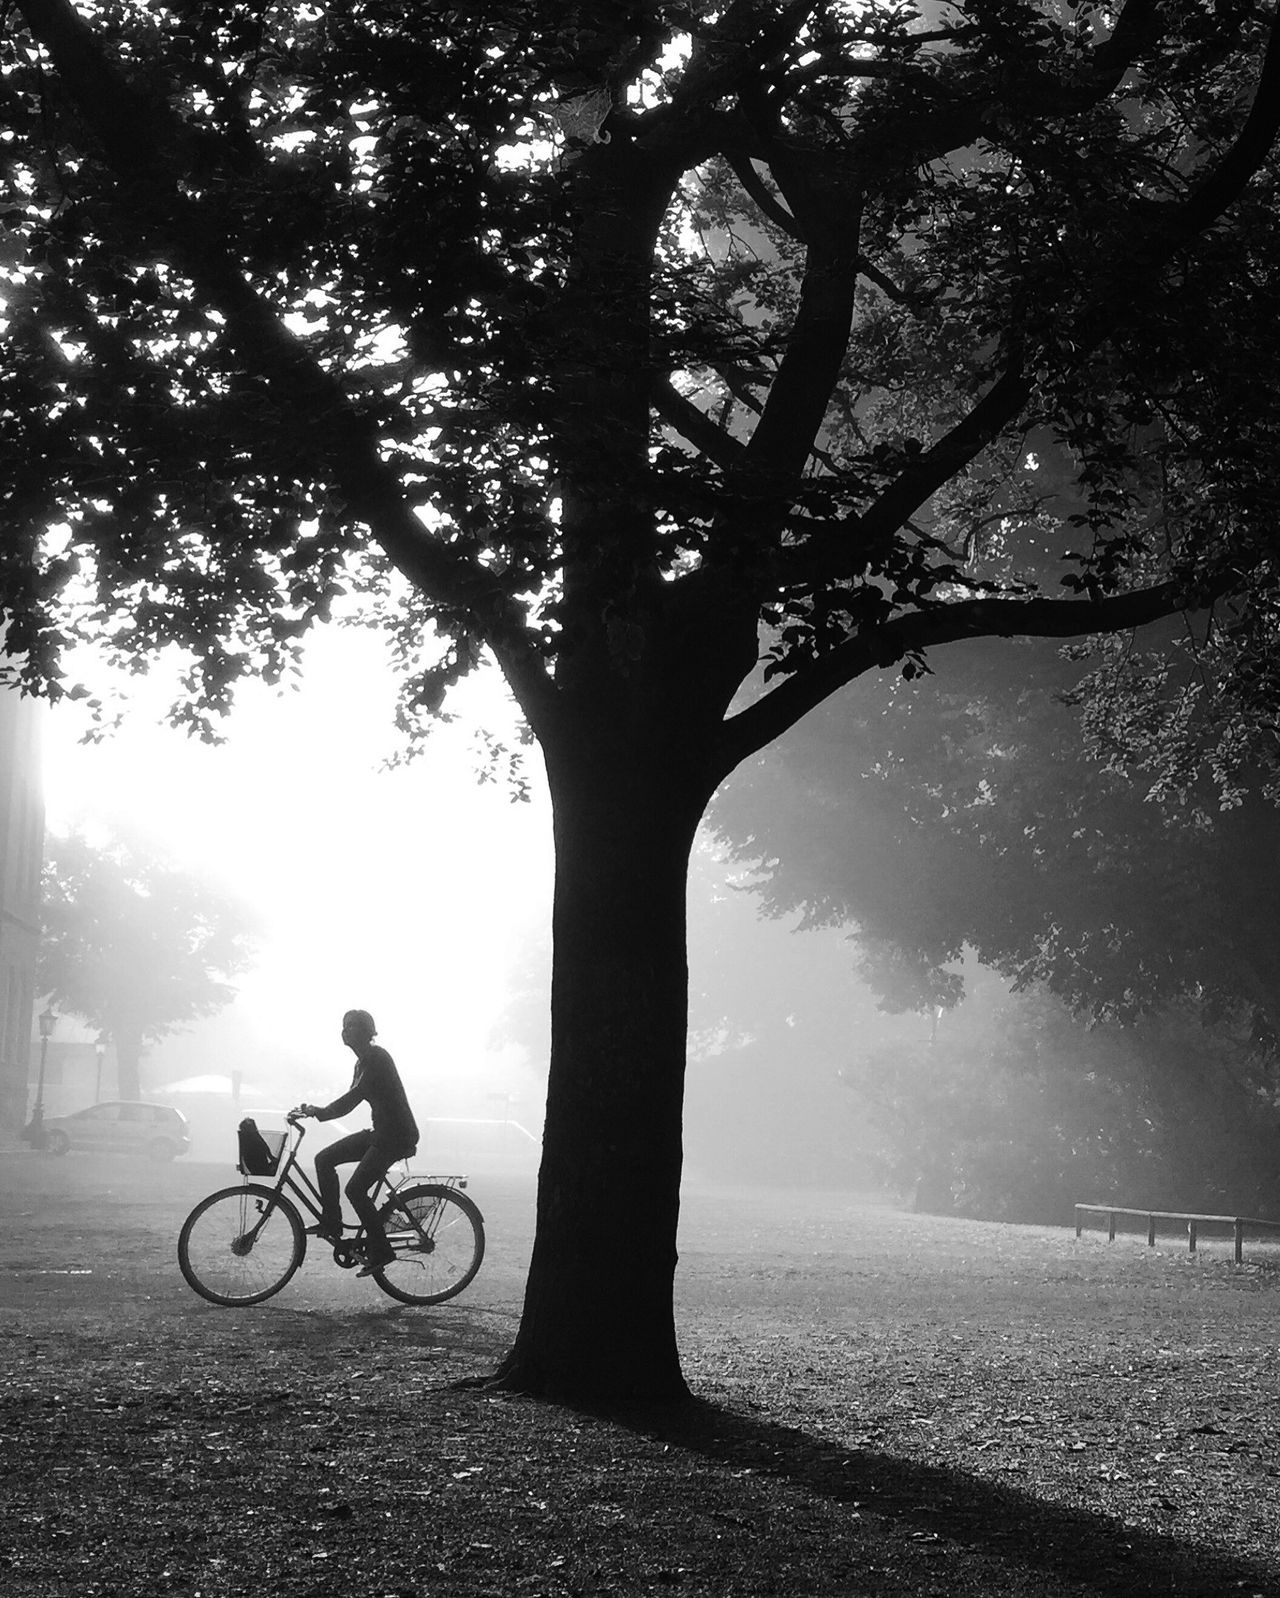 Bicycle Cycling Tree Monochrome Shootermag EyeEm Best Shots - Black + White Darkness And Light Bw_collection Silhouette